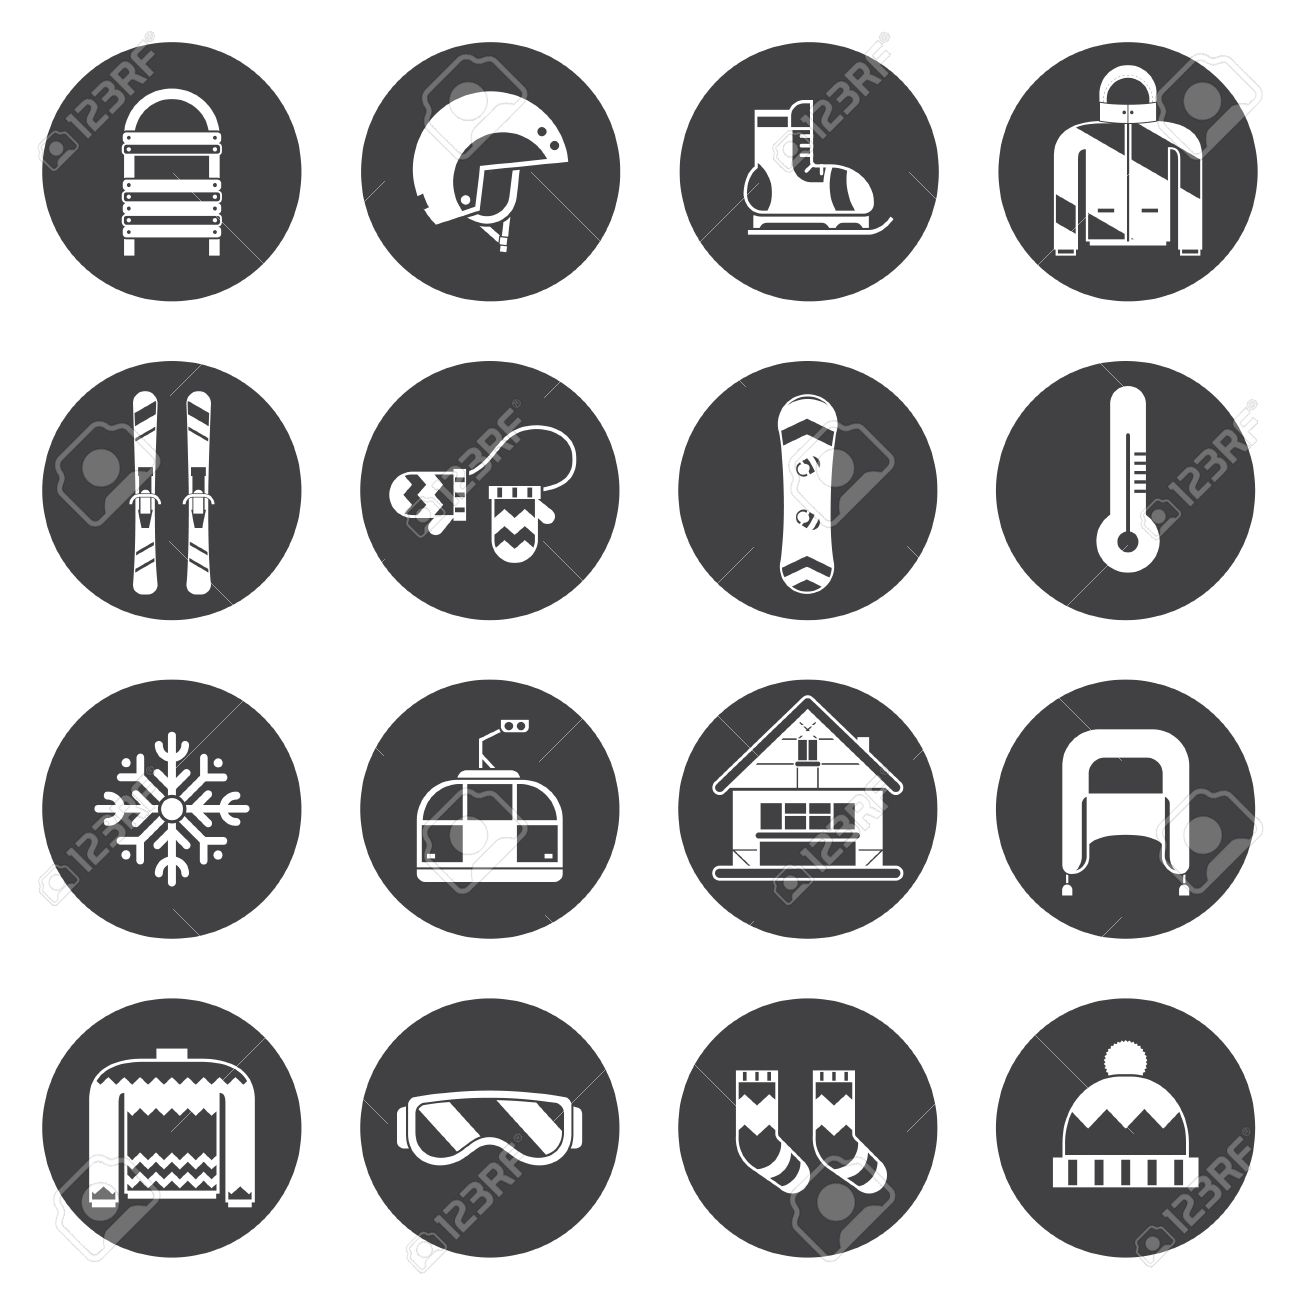 0315055836d3 Winter sports and fun outline icon collection. Winter resort silhoutte  pictogram set. Outdoor winter activity lifestyle concept icons.